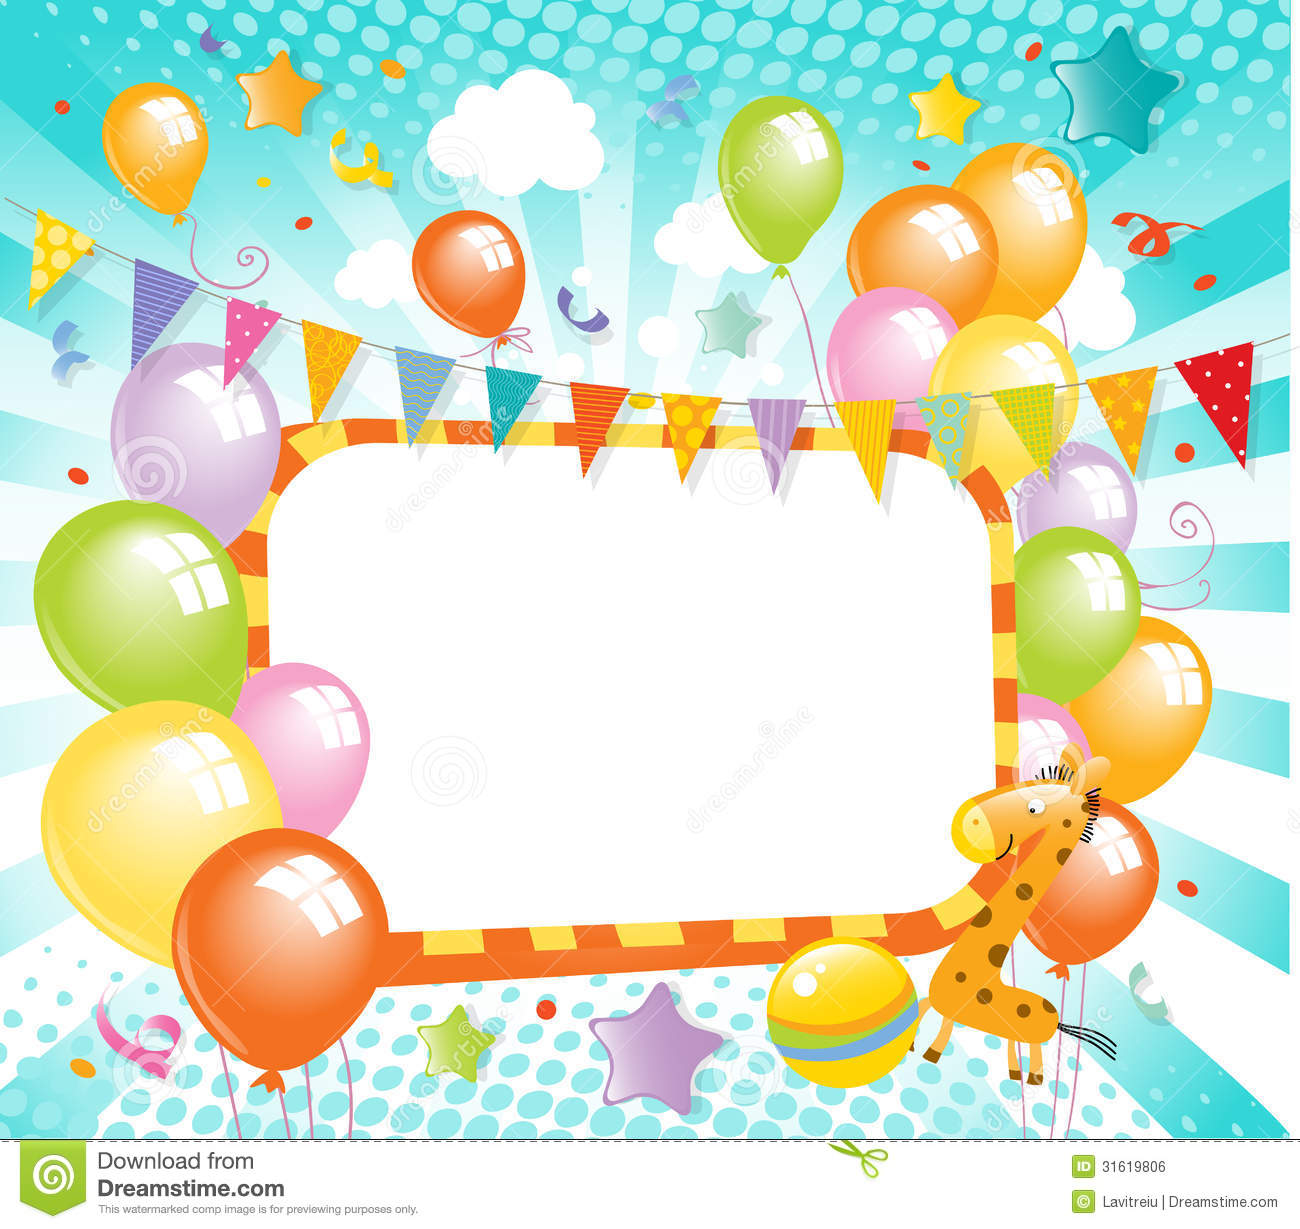 Colorful Balloons Label Royalty Free Stock Image - Image: 31619806